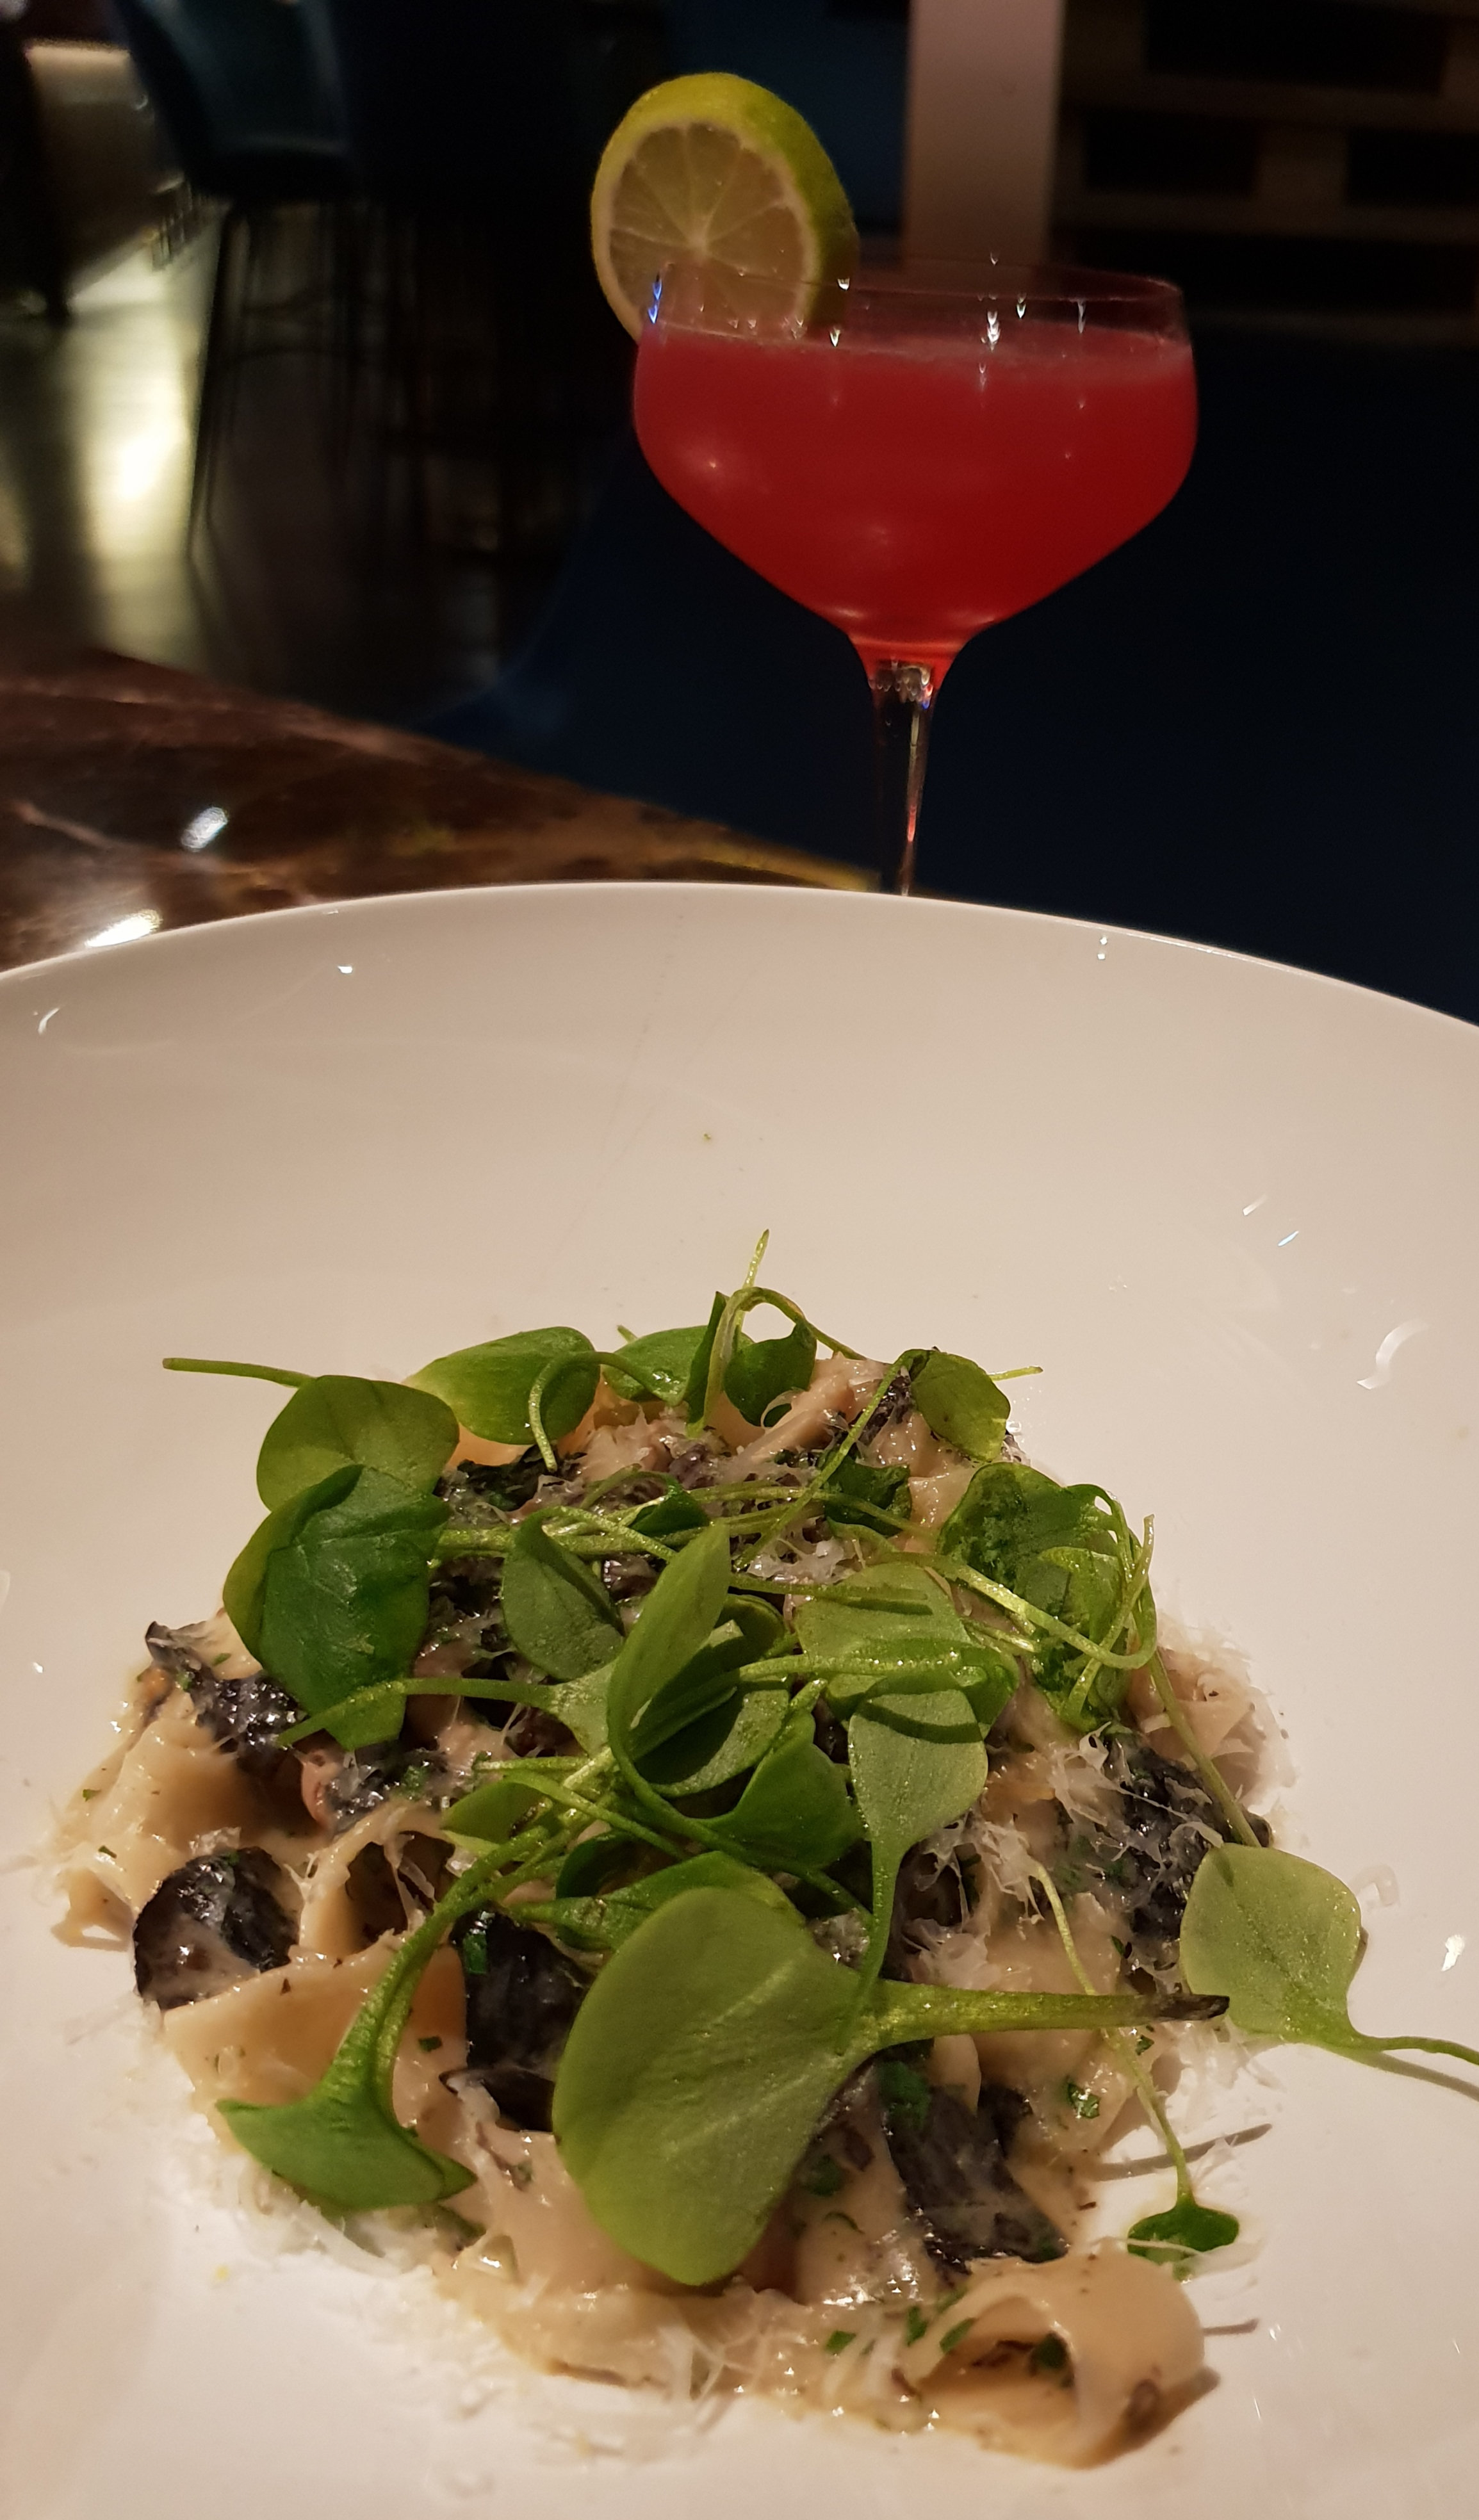 Hand-made pasta with butter sauce, mushrooms with a touch of truffle